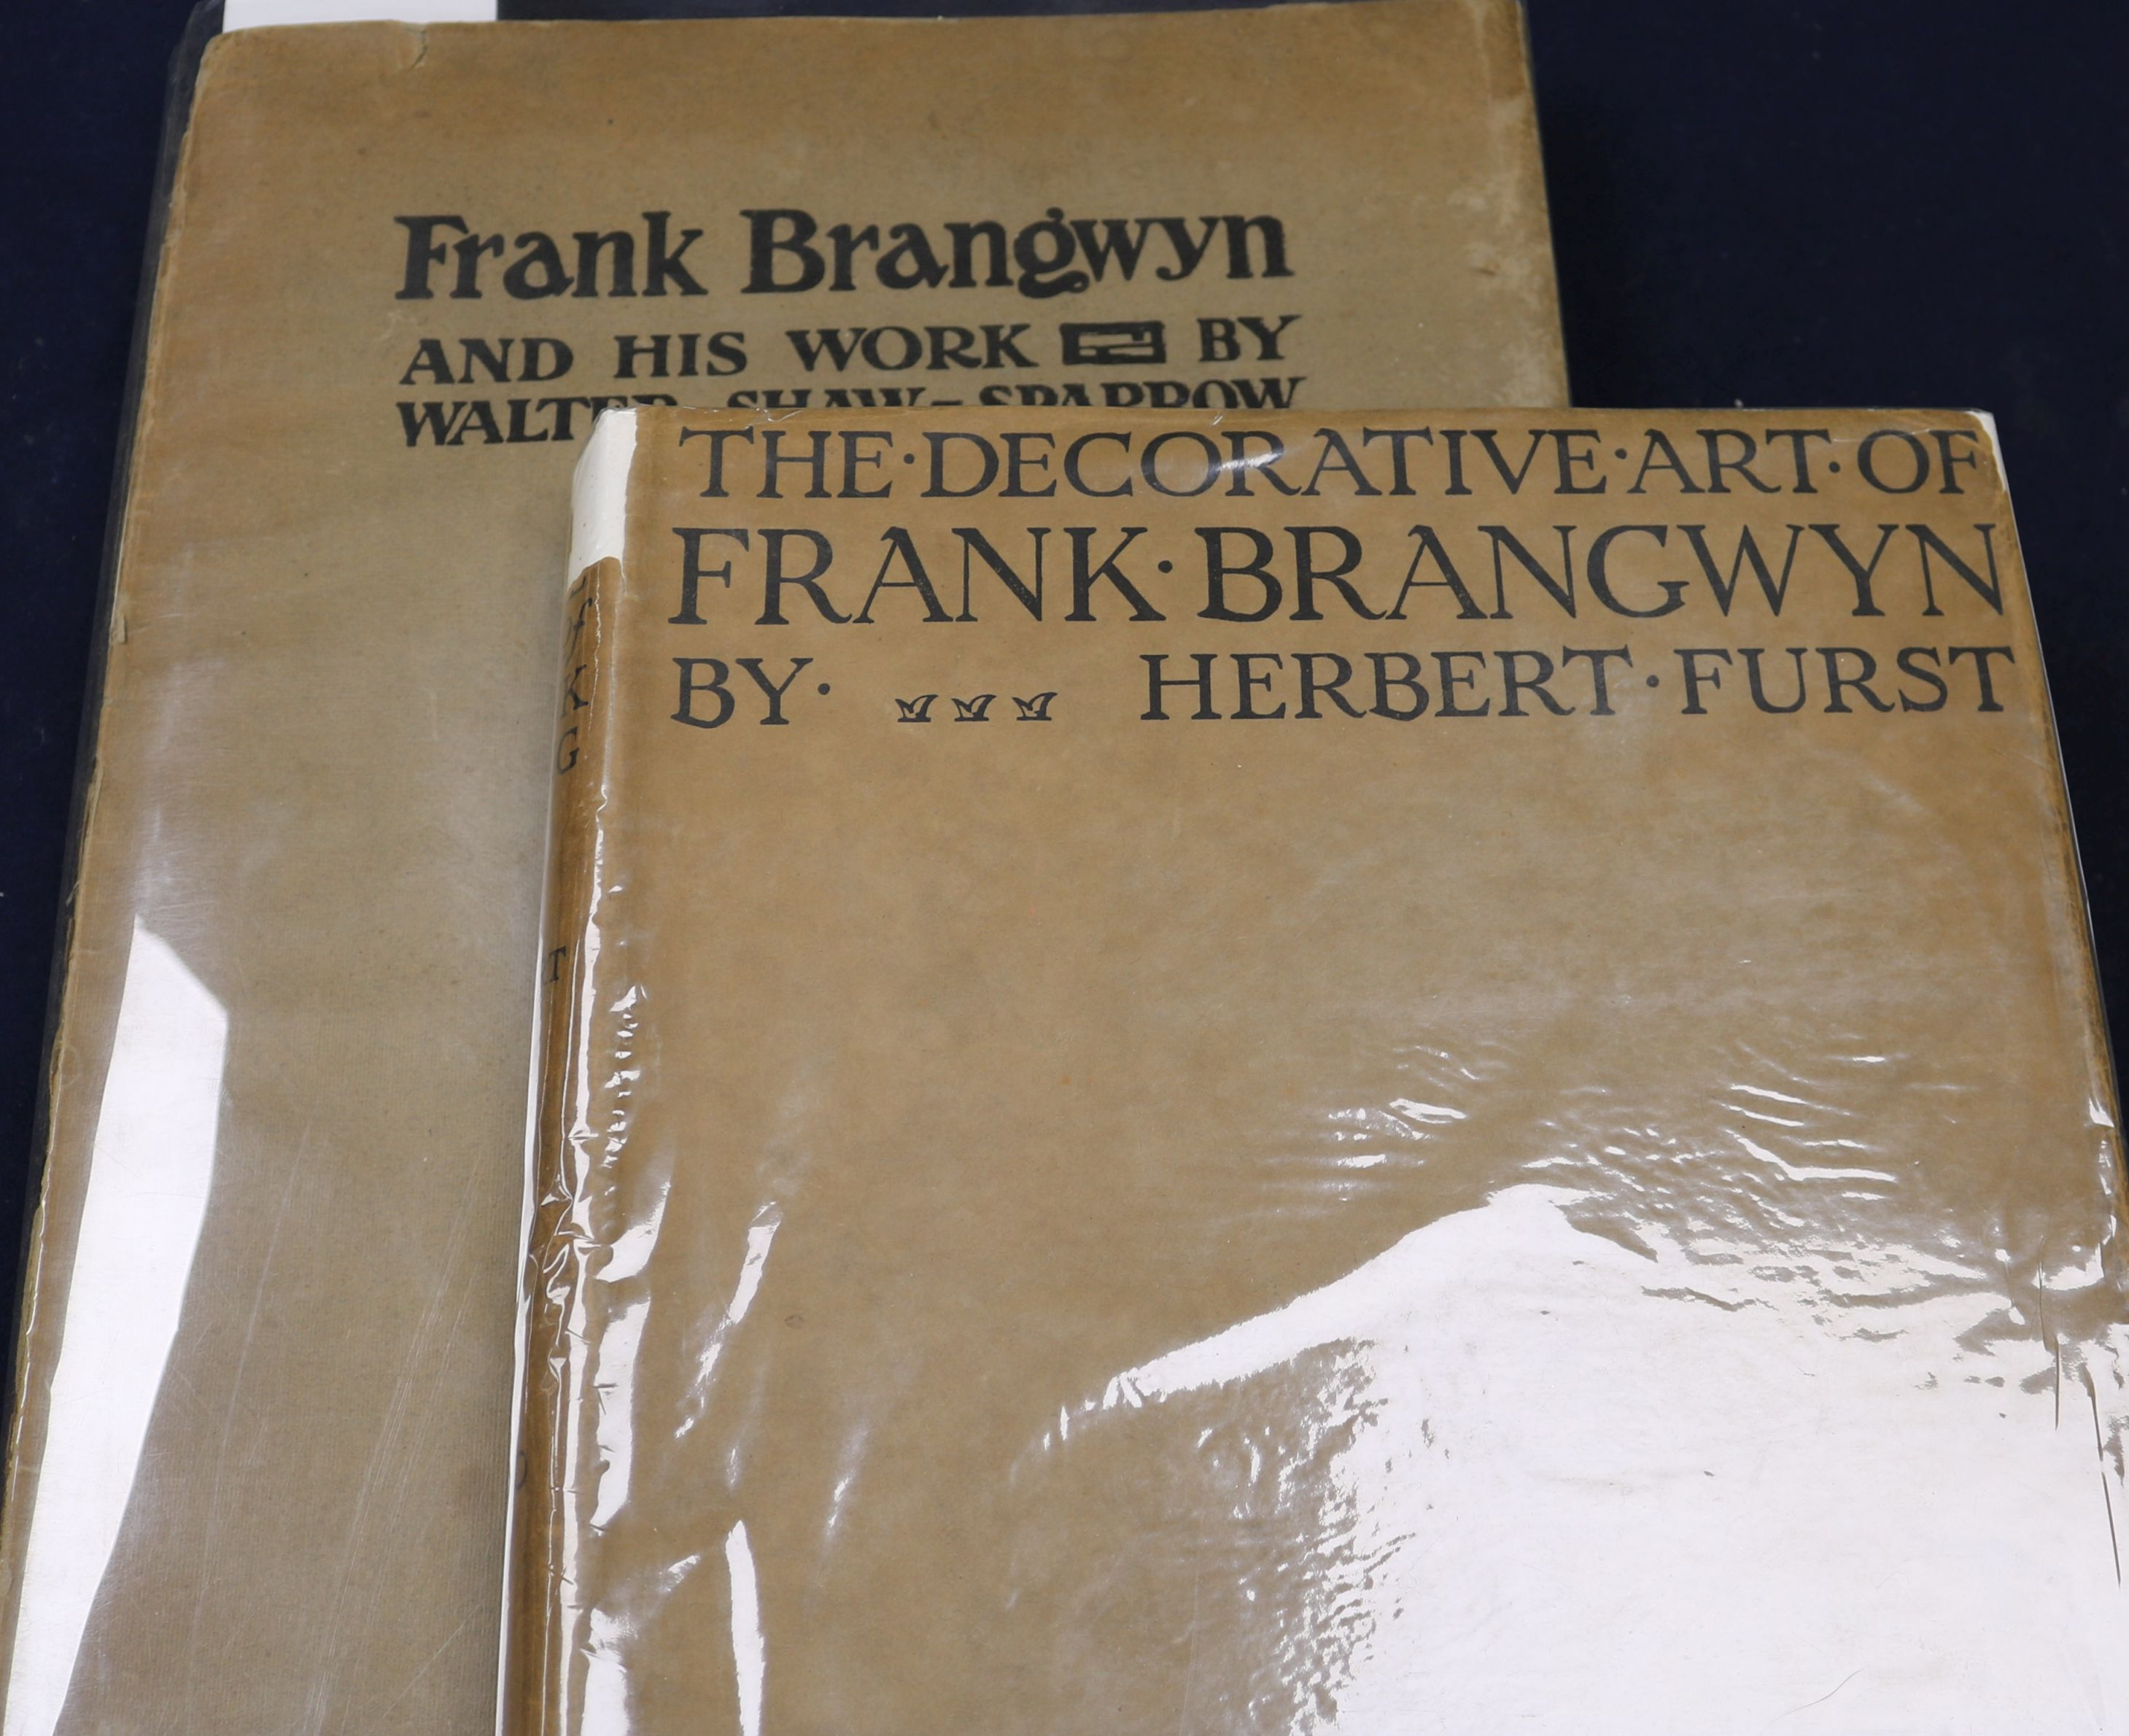 Lot 7 - Furst, Herbert, Ernest, Augustus - The Decorative Art of Frank Brangwyn, 4to, cloth, with d.j., with